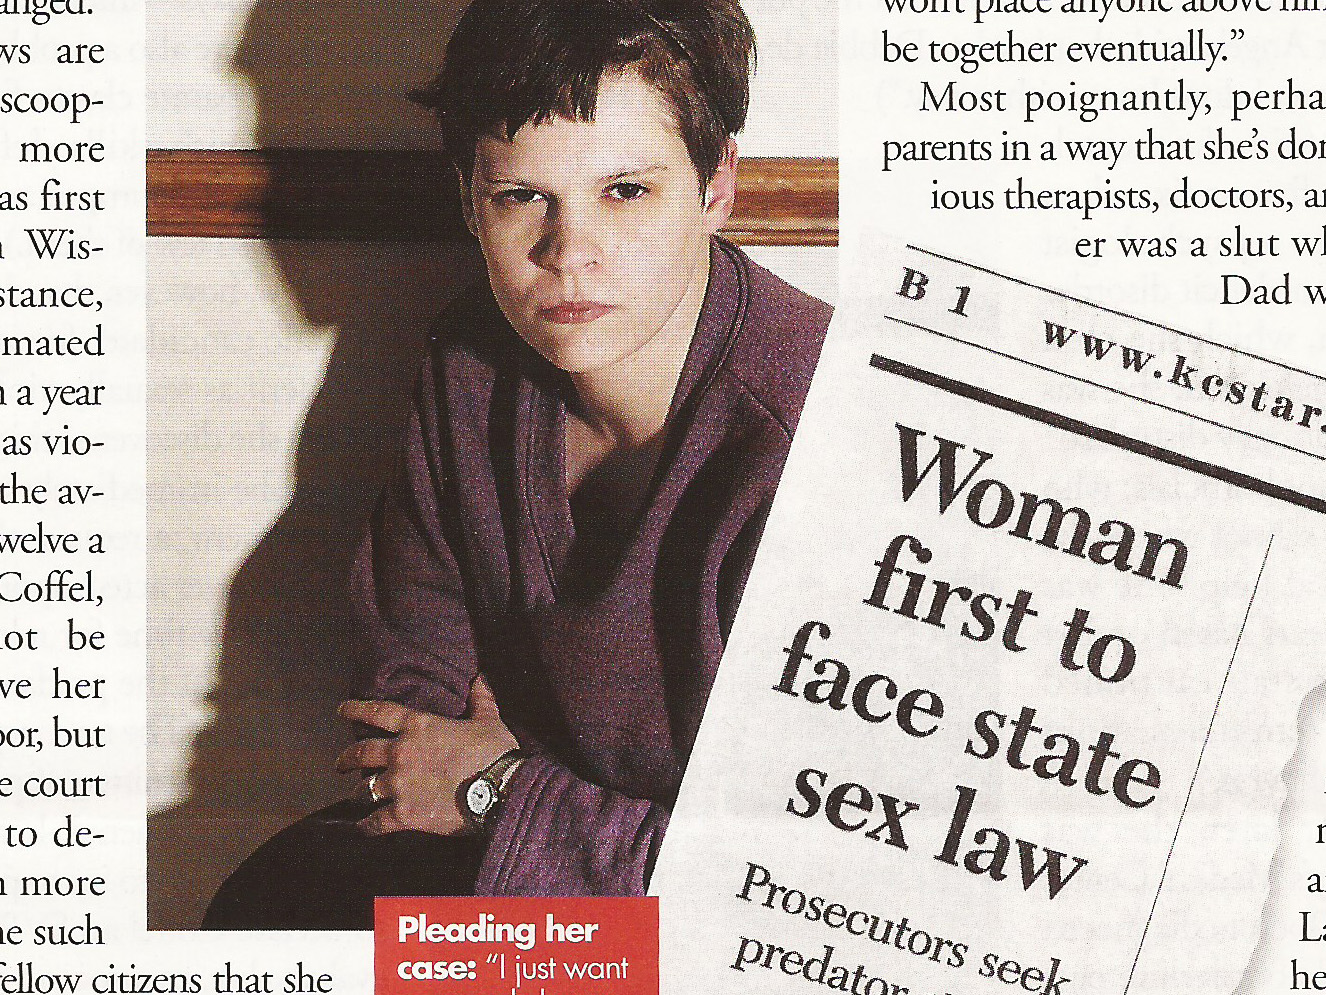 Is This Woman, A Sexual Predator?  Elle Magazine  , 2002